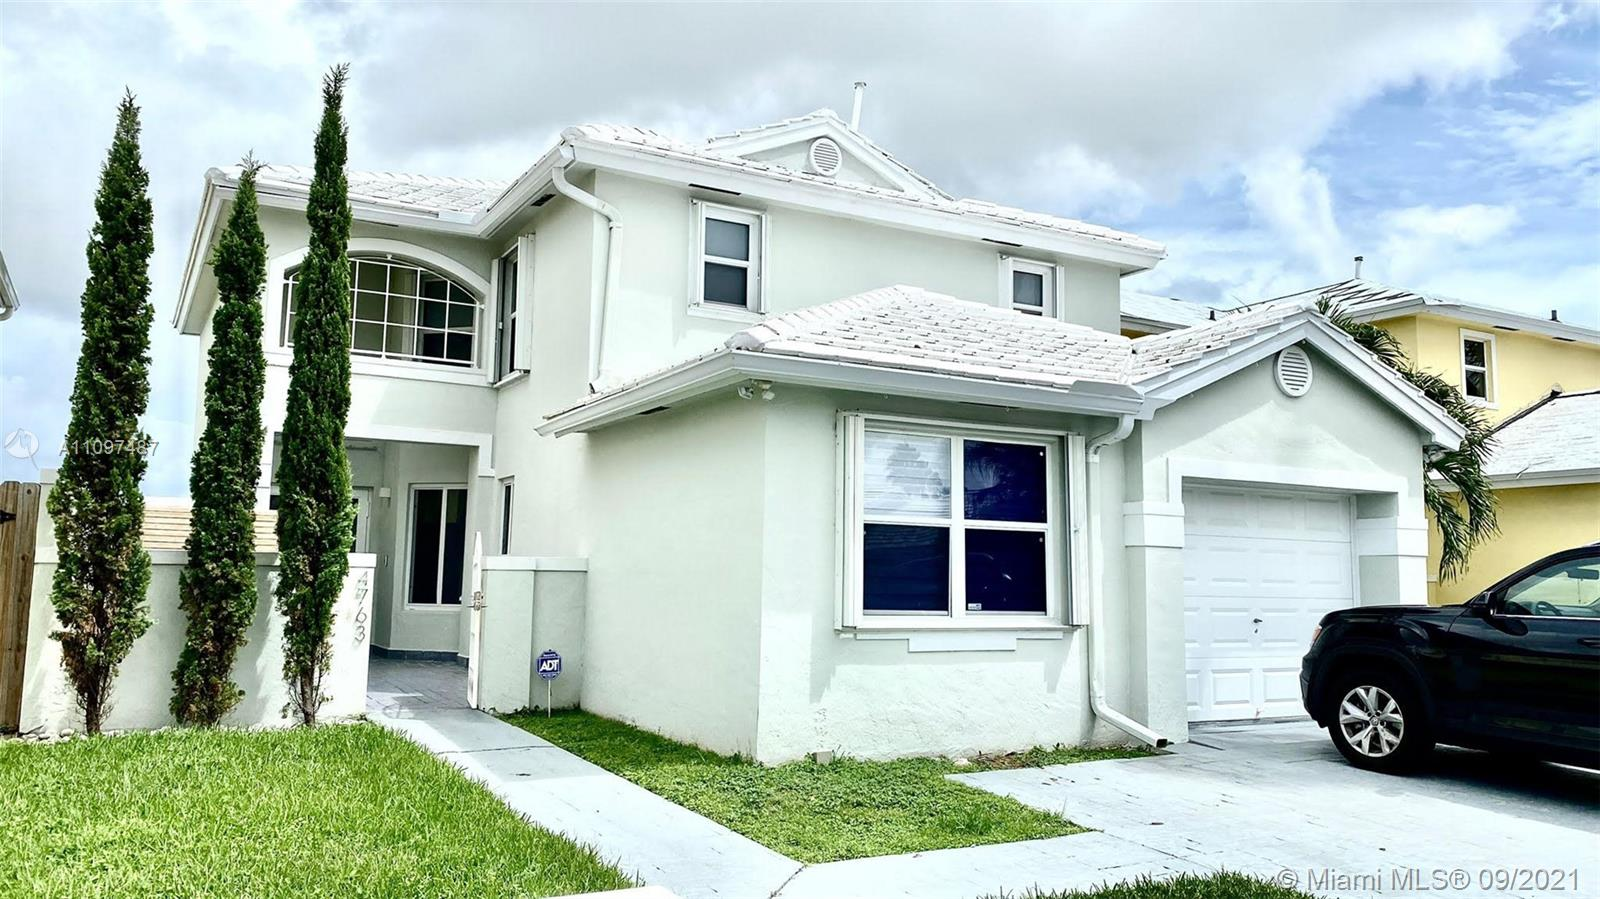 Lakes Of The Meadow - 4763 SW 154th Ave, Miami, FL 33185